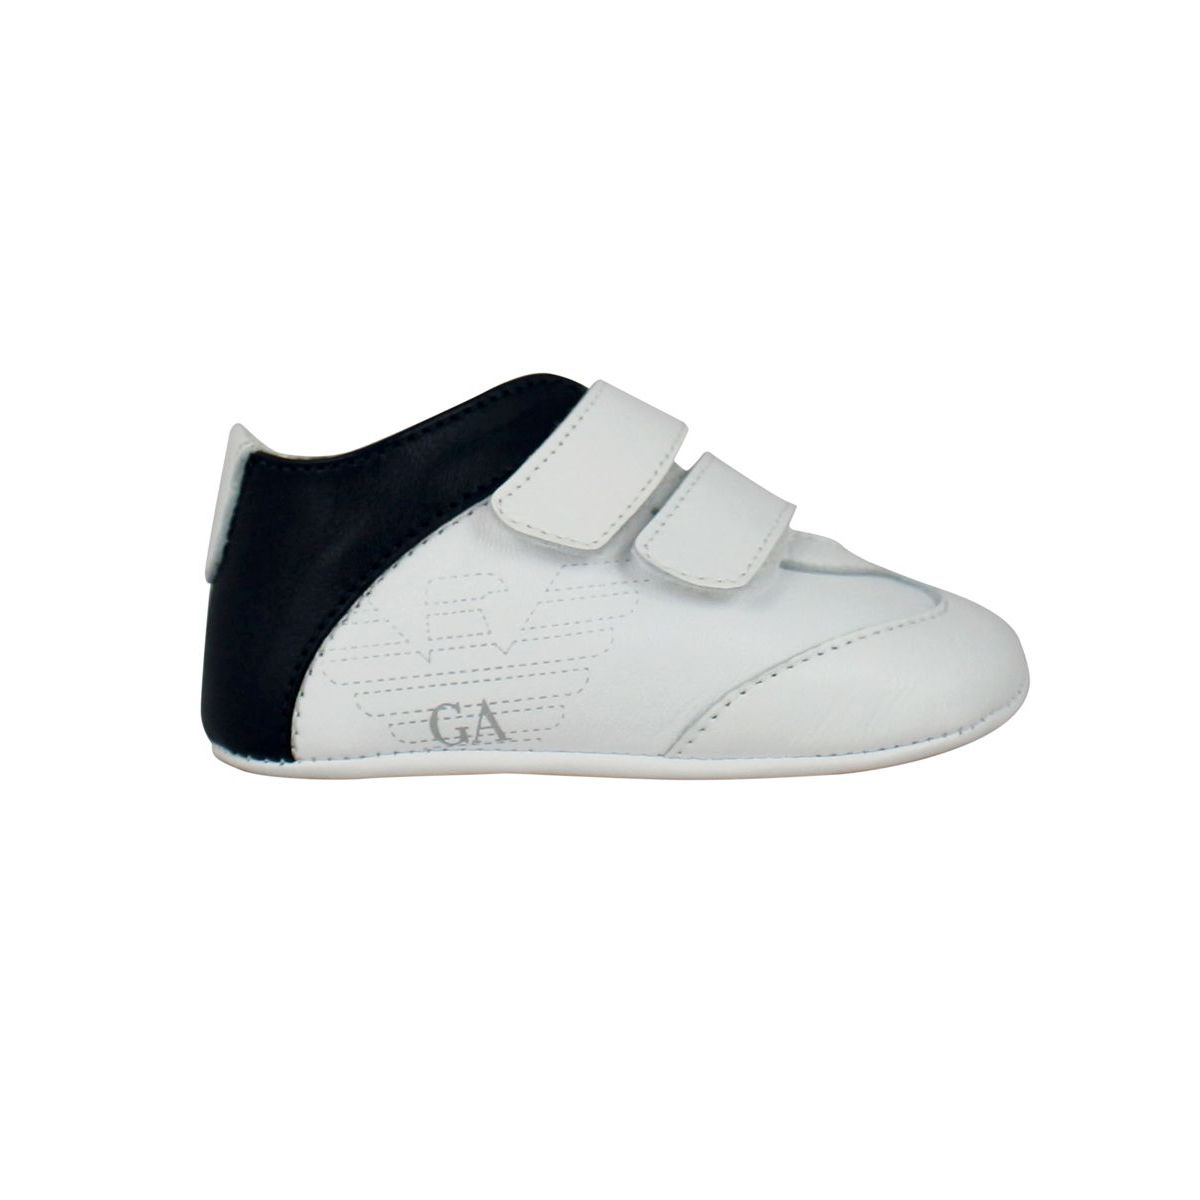 Sneakers in leather with tears White / blue Emporio Armani